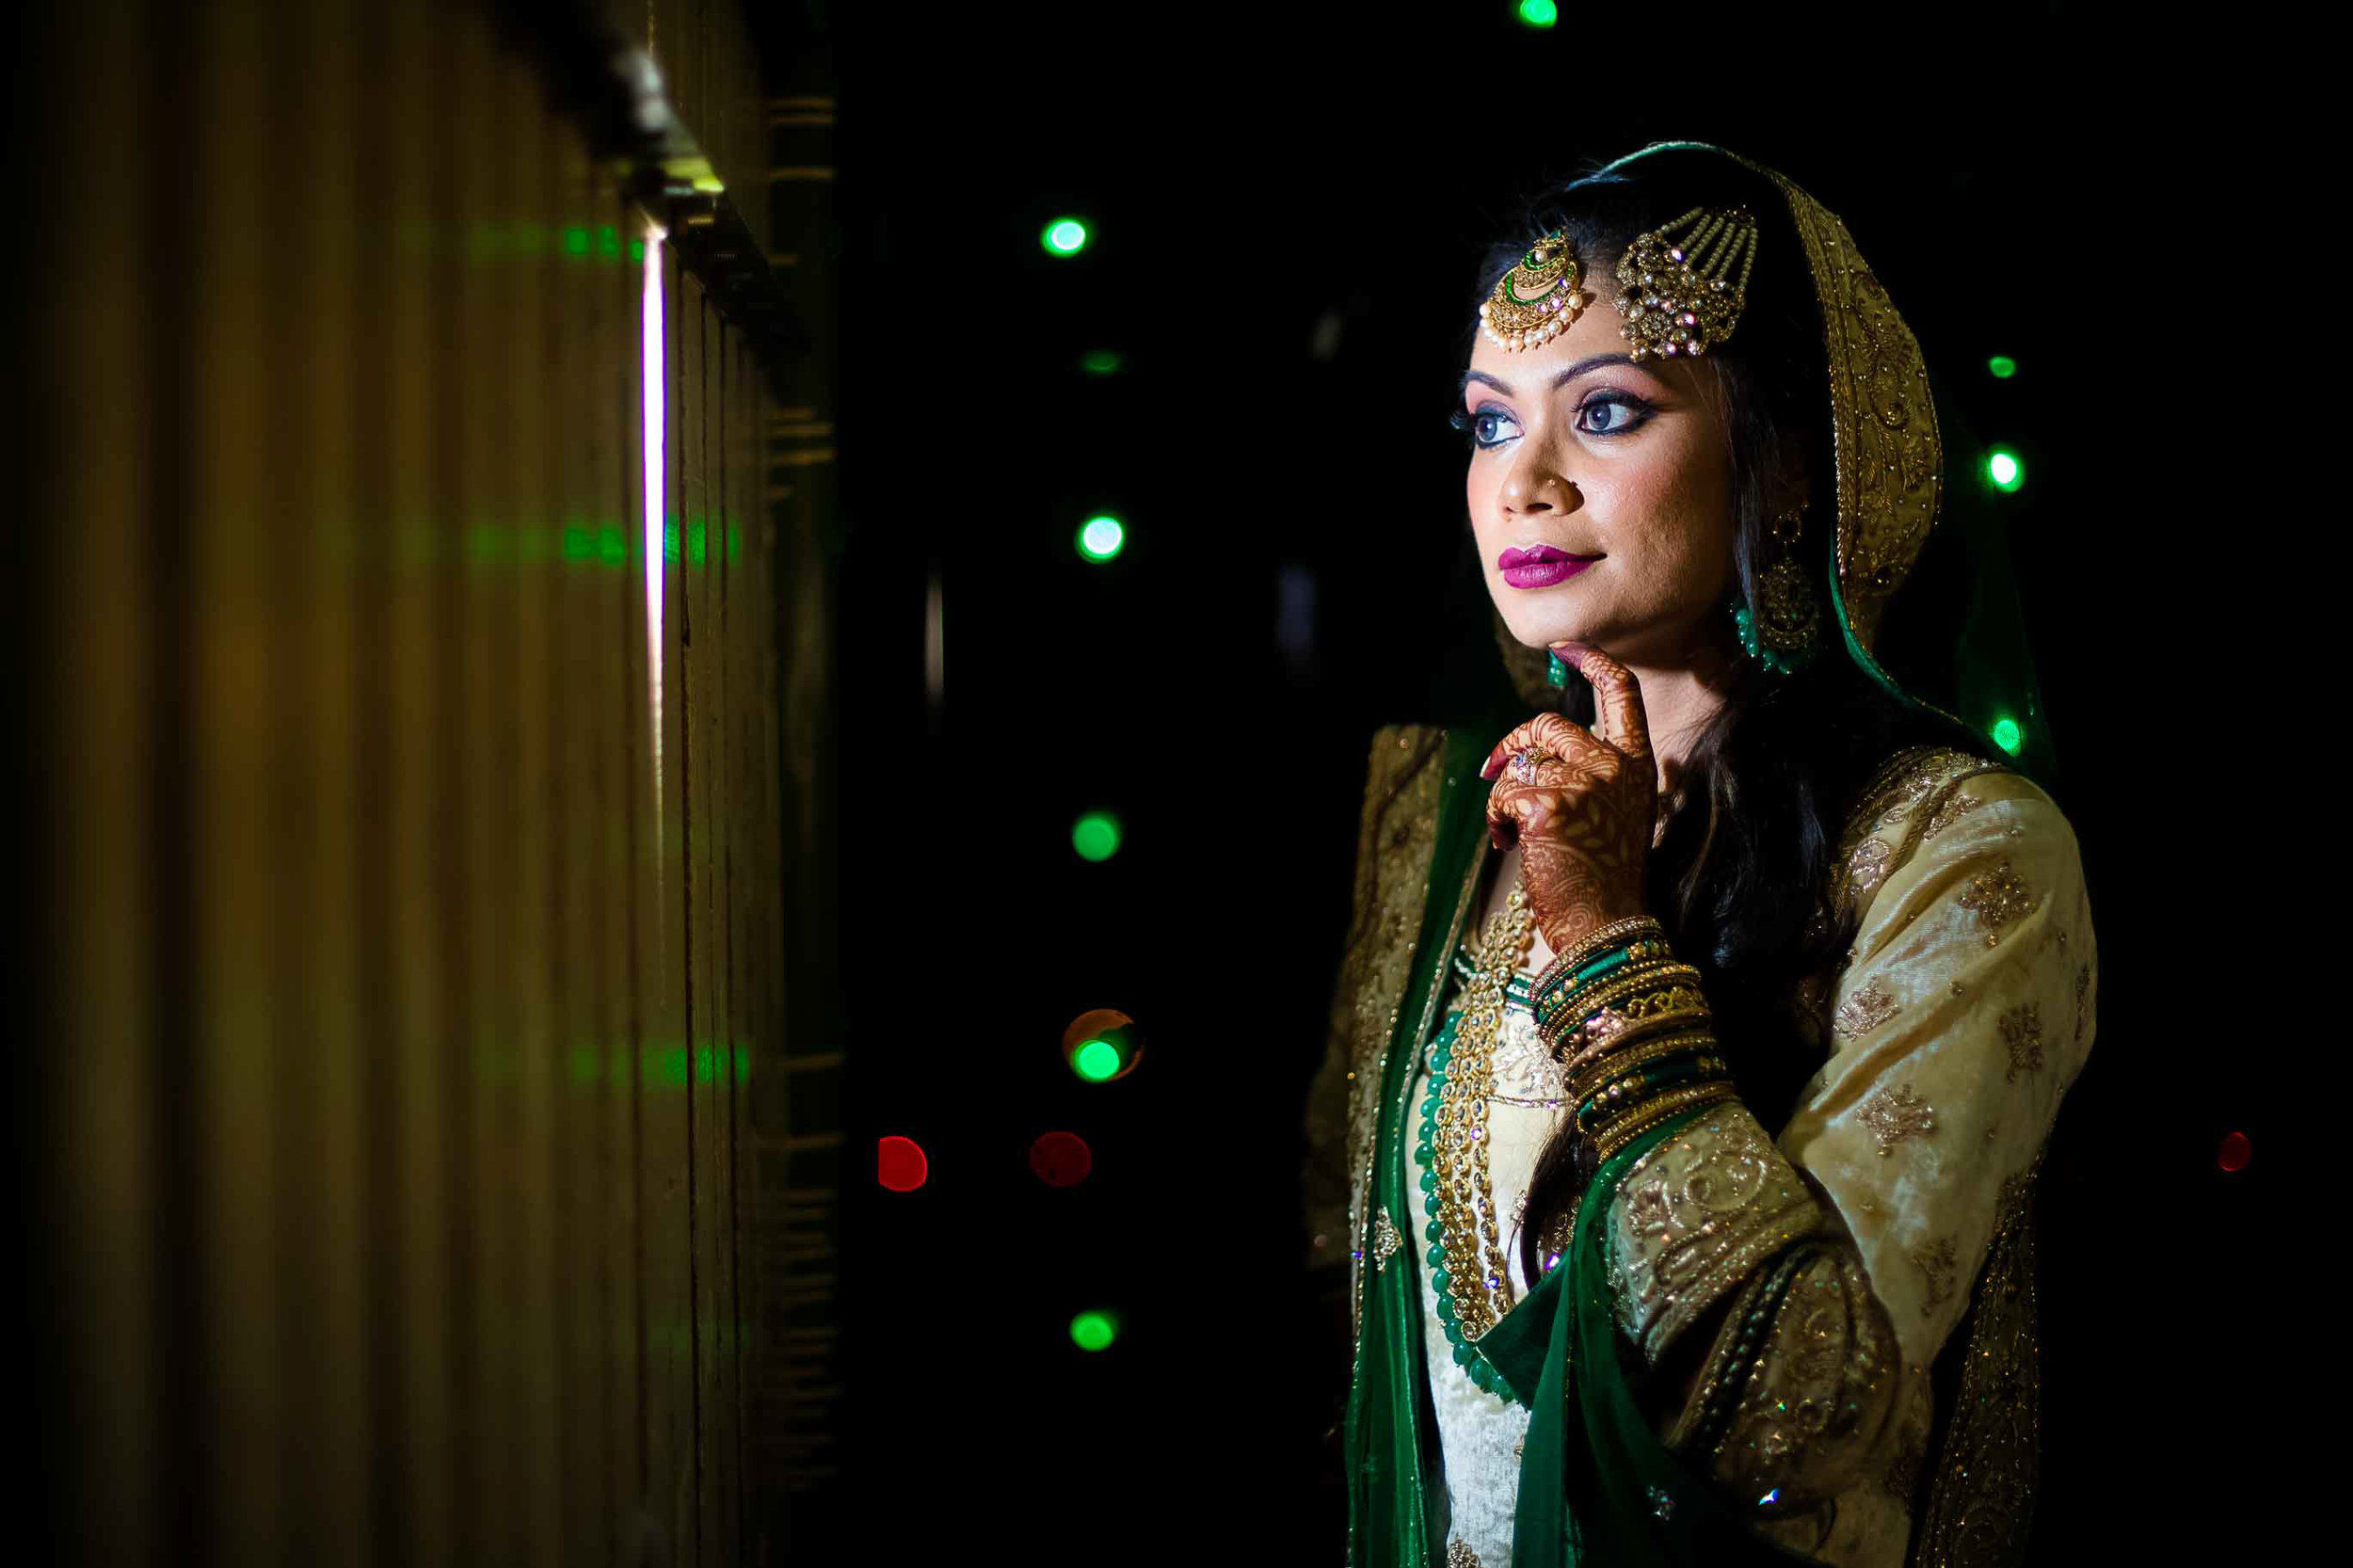 Pixel-Chronicles-Meraj-Yousuf-Candid-Wedding-Documentary-Photography-Beautiful-Bride-Best-Portrait-Muslim-Wedding-21.jpg